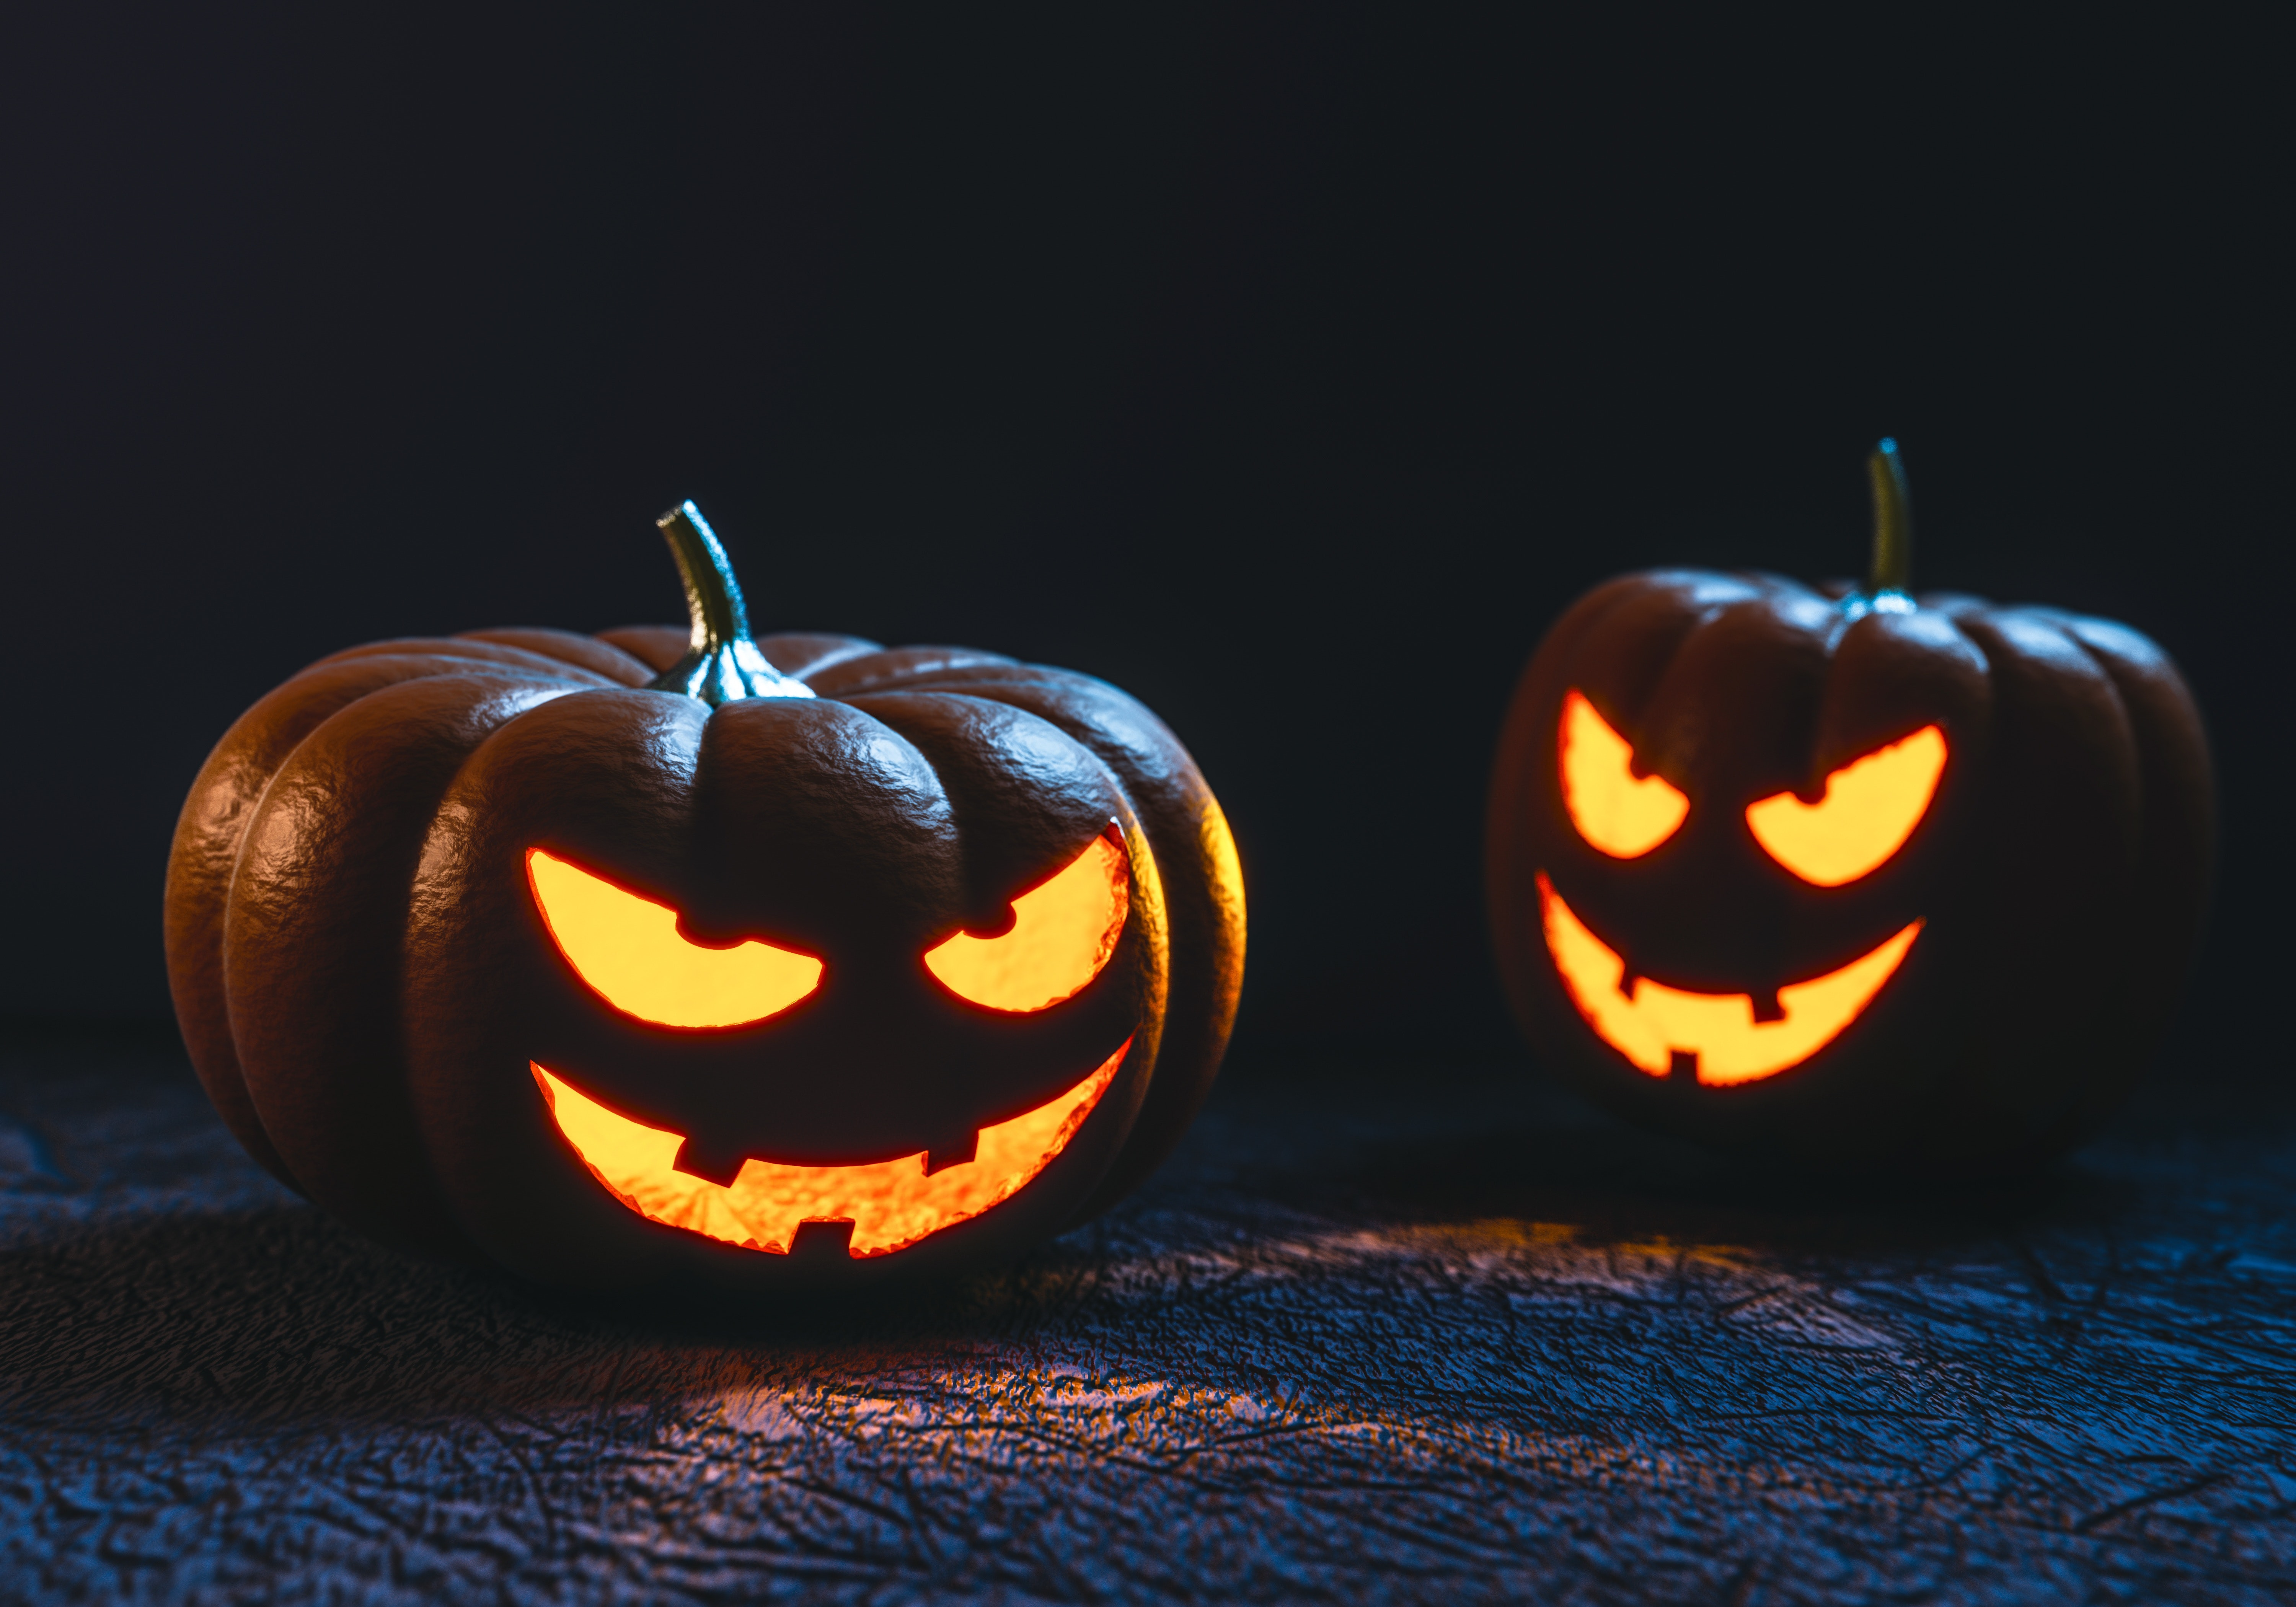 12 Pumpkin Carving Ideas For Halloween 2017 That Are So Easy